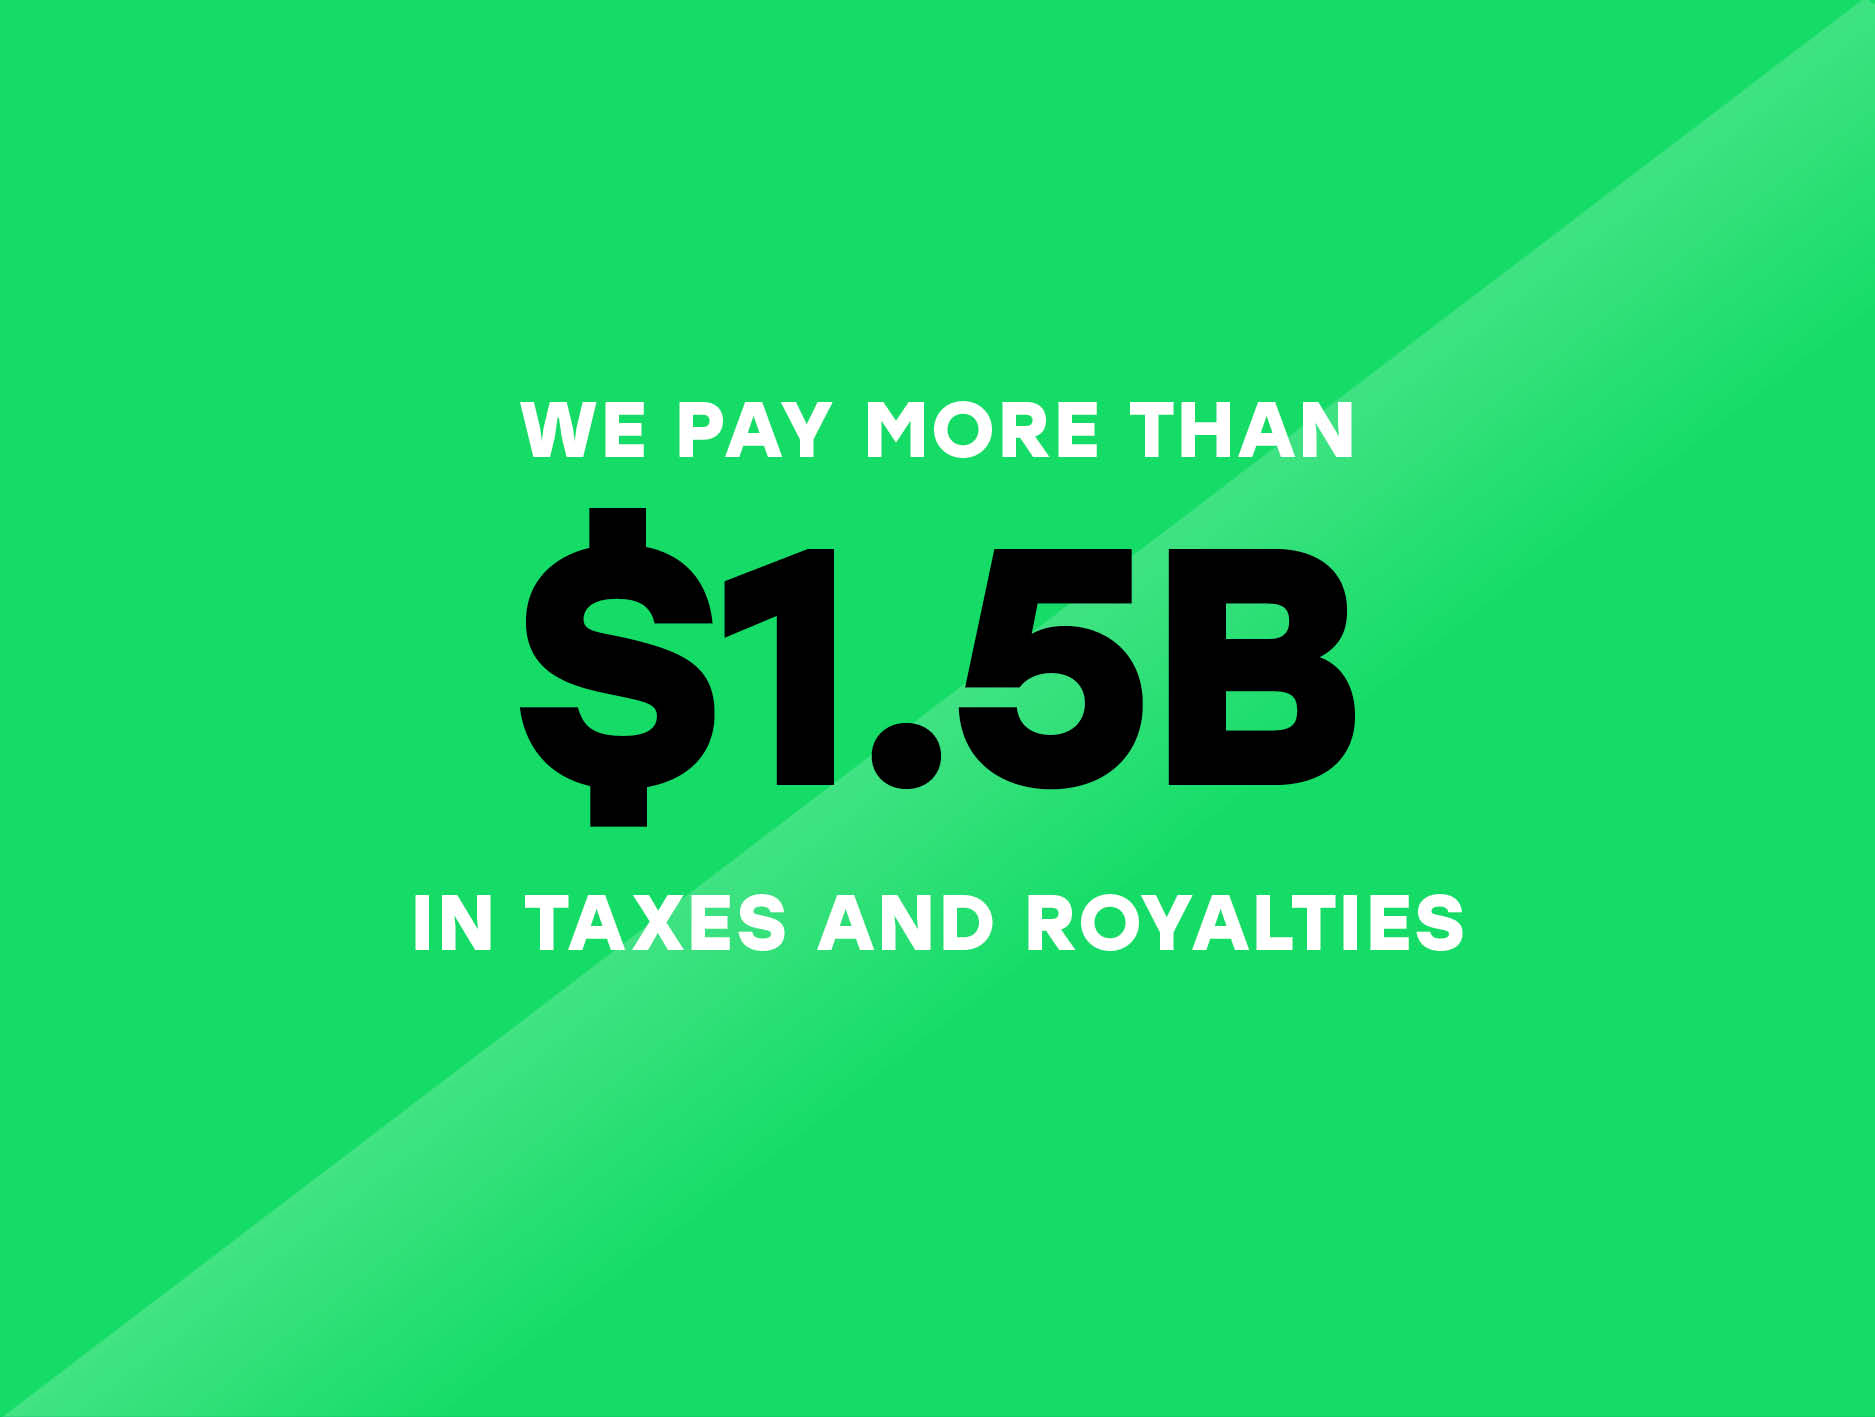 We paid 1.5 billion dollars in government taxes and royalties